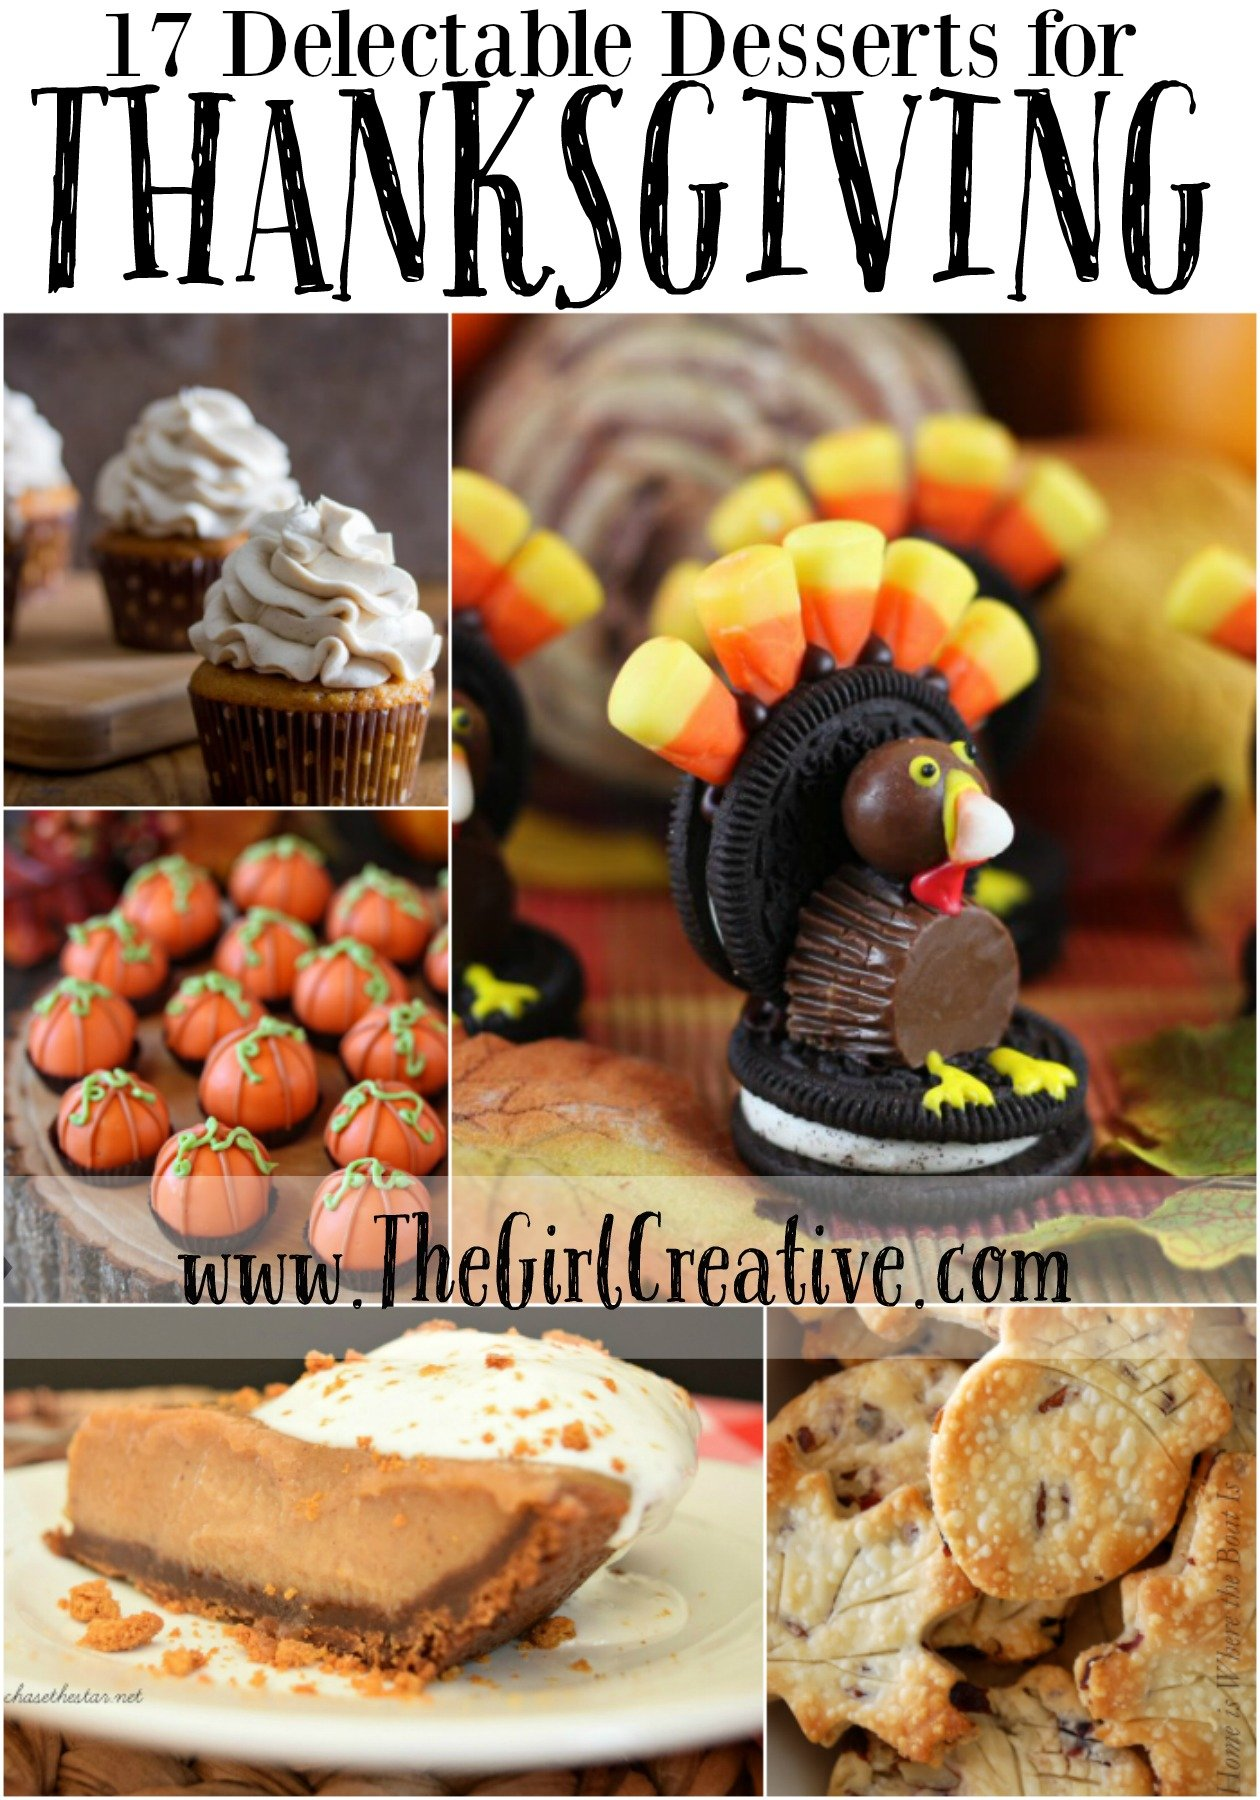 17 Delectable Desserts for Thanksgiving thegirlcreative.com